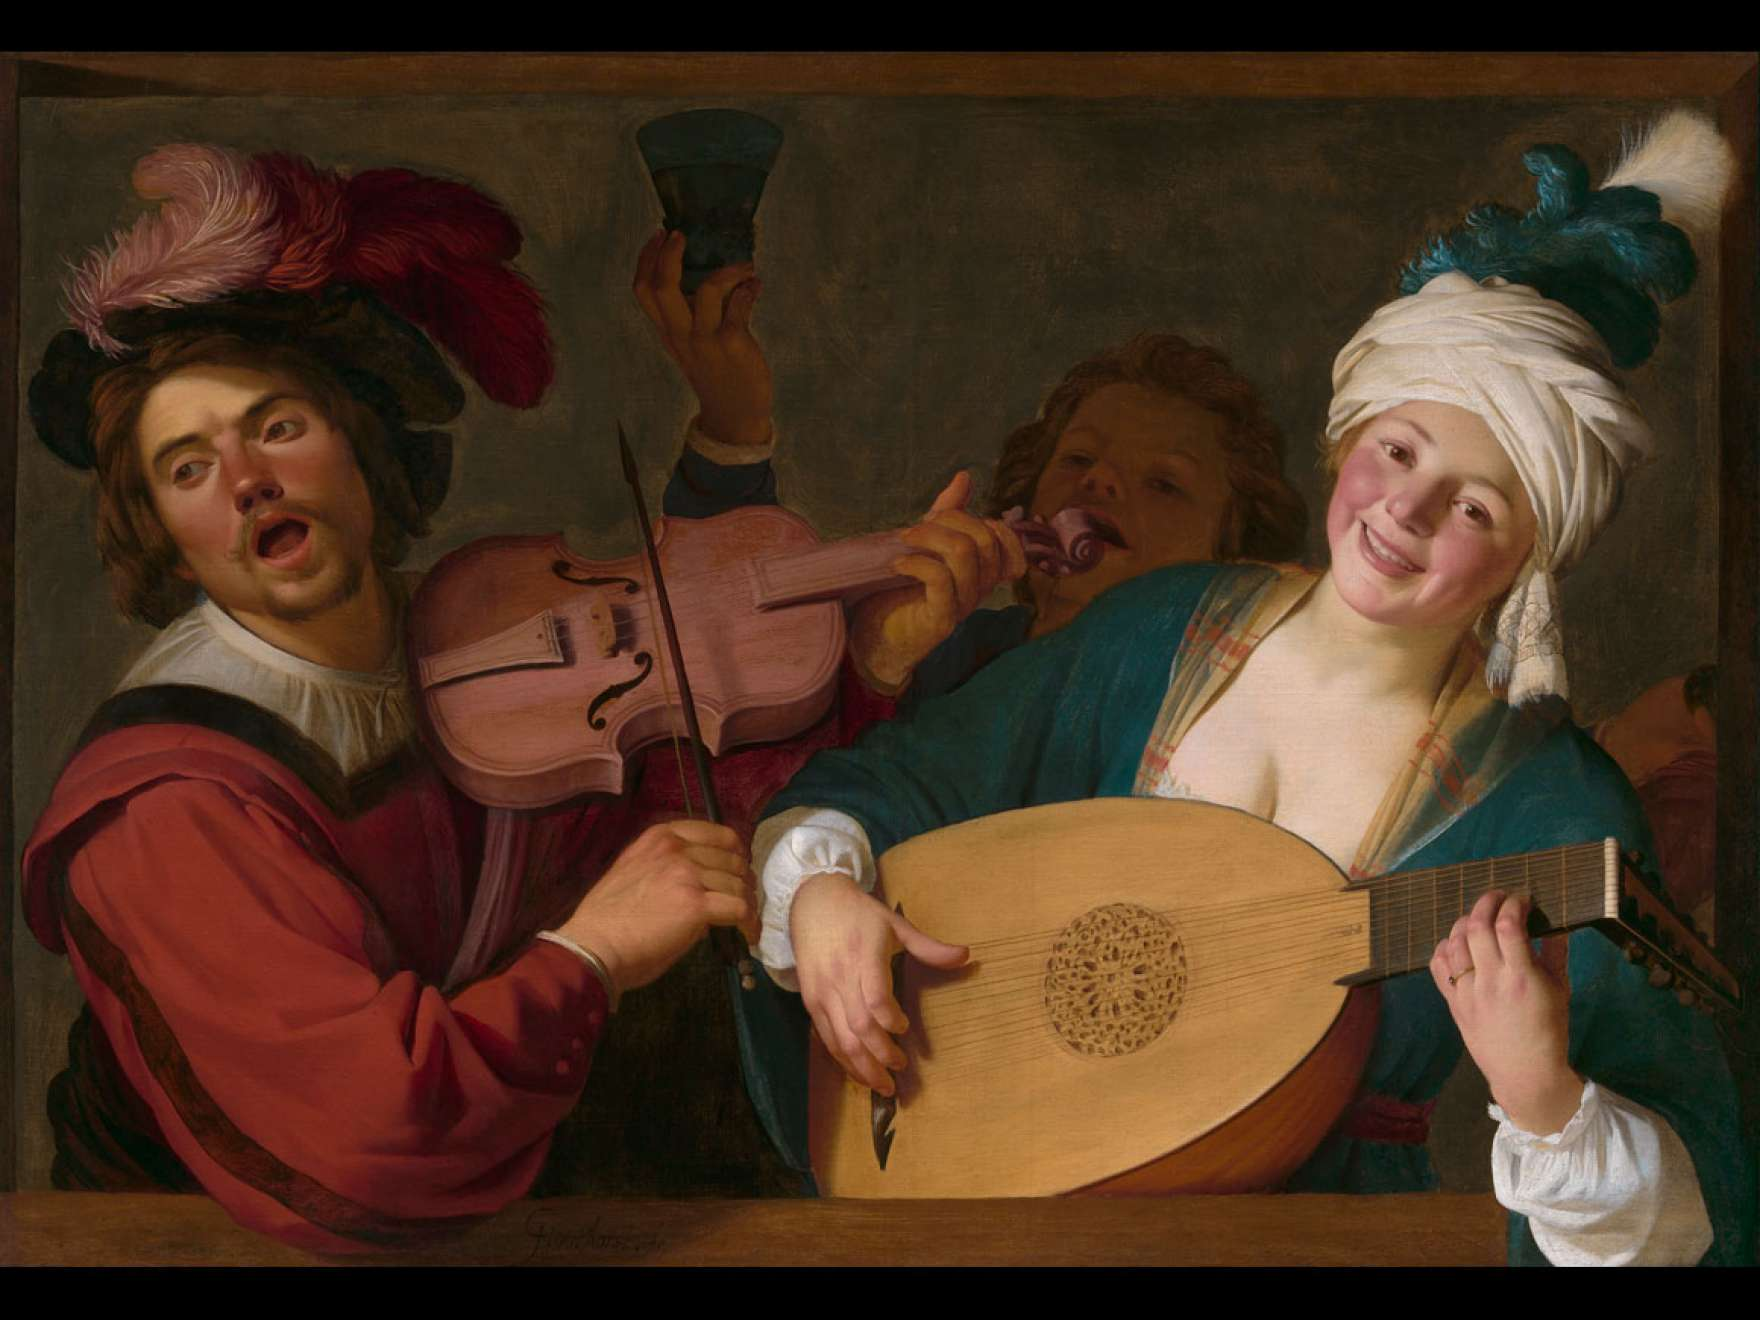 Gerrit van Honthorst's painting, A Merry Group behind a Balustrade with a Violin and a Lute Player